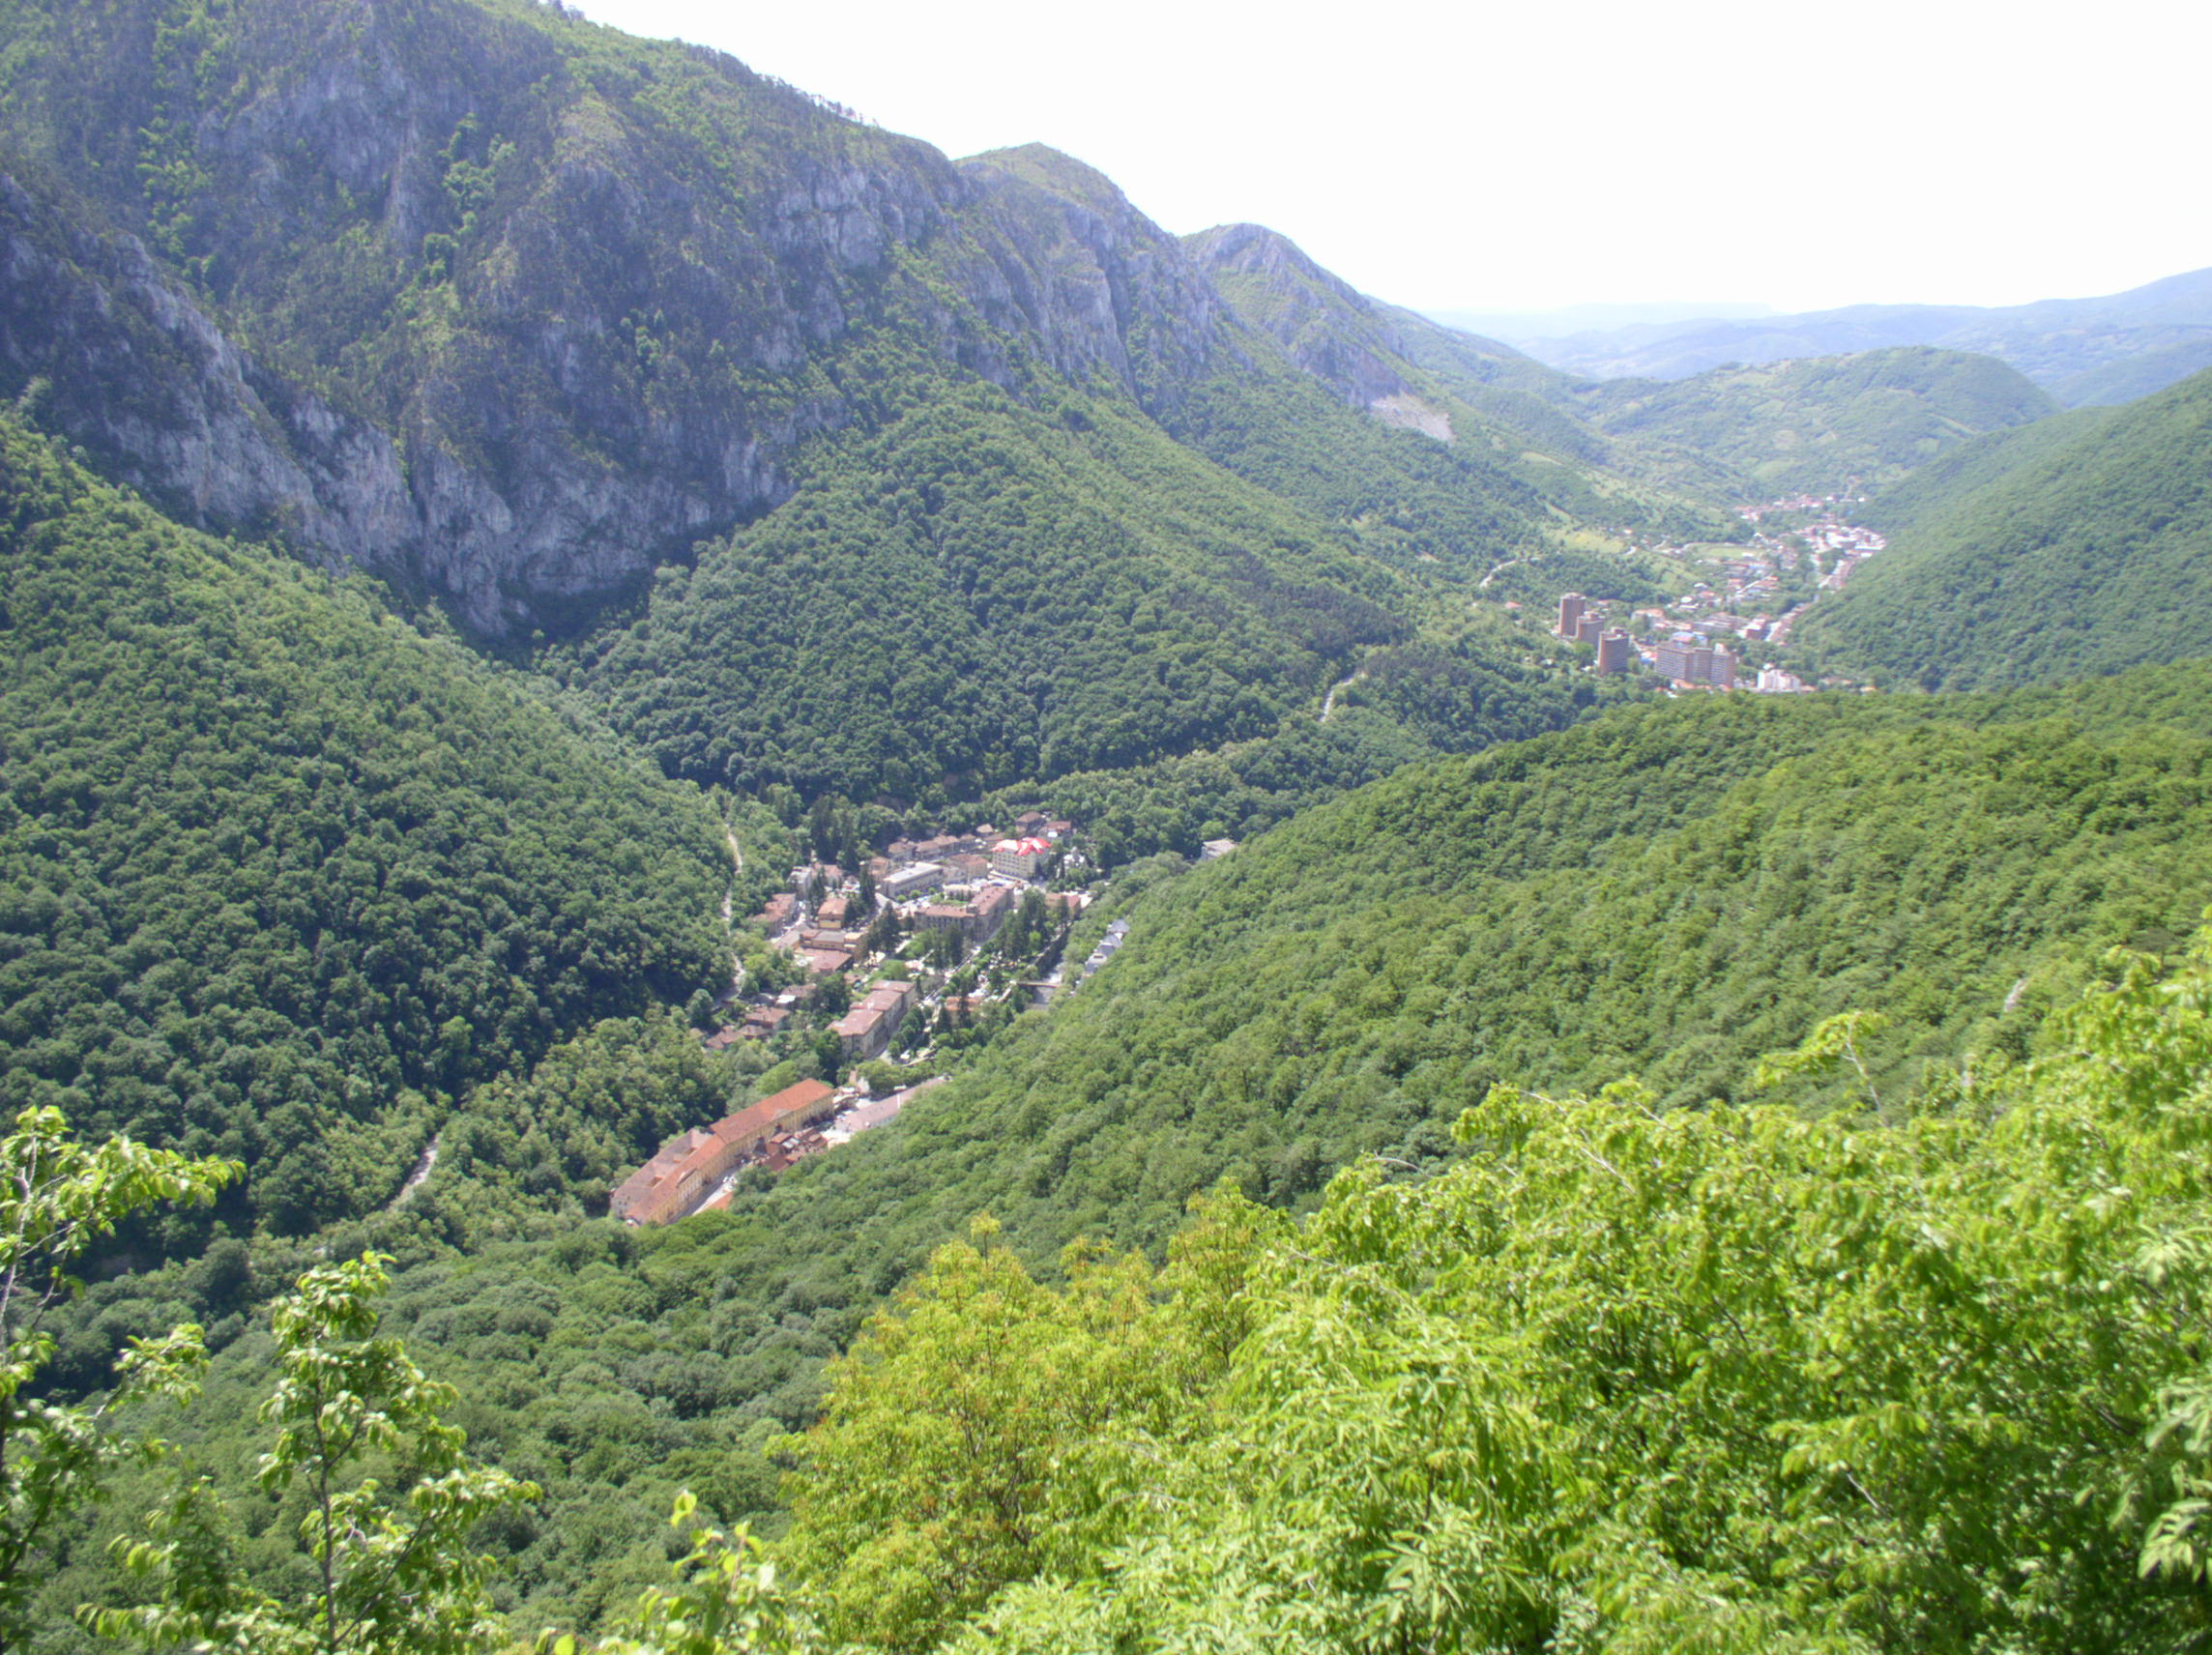 """Sursa/source: Wikipedia; """"Băile Herculane (Latin: Aqua Herculis; German: Herkulesbad; Hungarian: Herkulesfürdő; Czech: Herkulovy Lázně) is a town in Romanian Banat, in Caraş-Severin County, situated in the valley of the Cerna River, between the Mehedinţi Mountains to the east and the Cerna Mountains to the west, elevation 168 meters."""" https://commons.wikimedia.org/wiki/File%3AB.Herculane_mai_2007.jpg"""